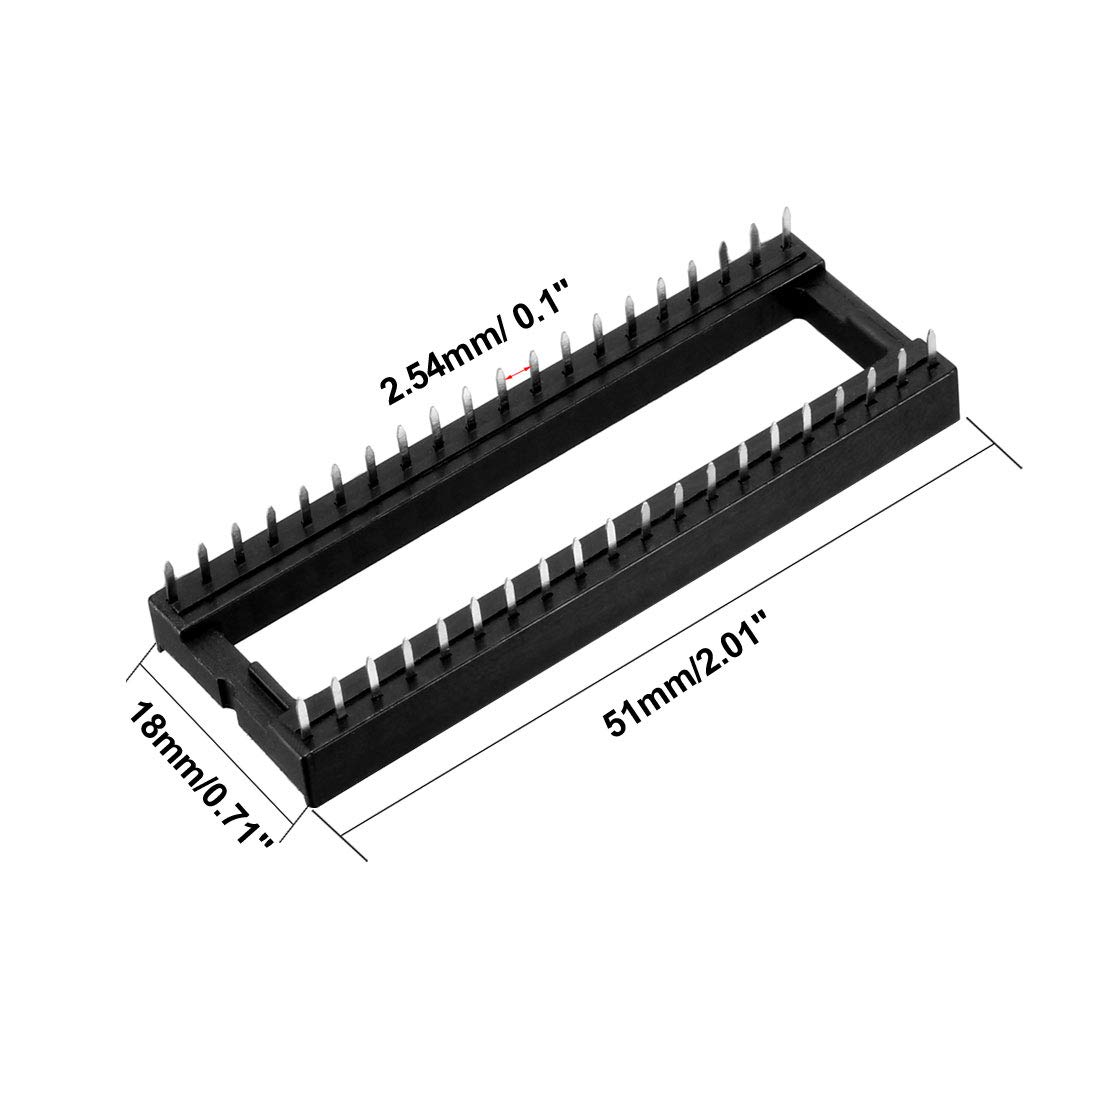 uxcell 25pcs 2.54mm Pitch 7.62mm Row Pitch 2 Row 24 Flat Pins Soldering DIP IC Chip Socket Adaptor